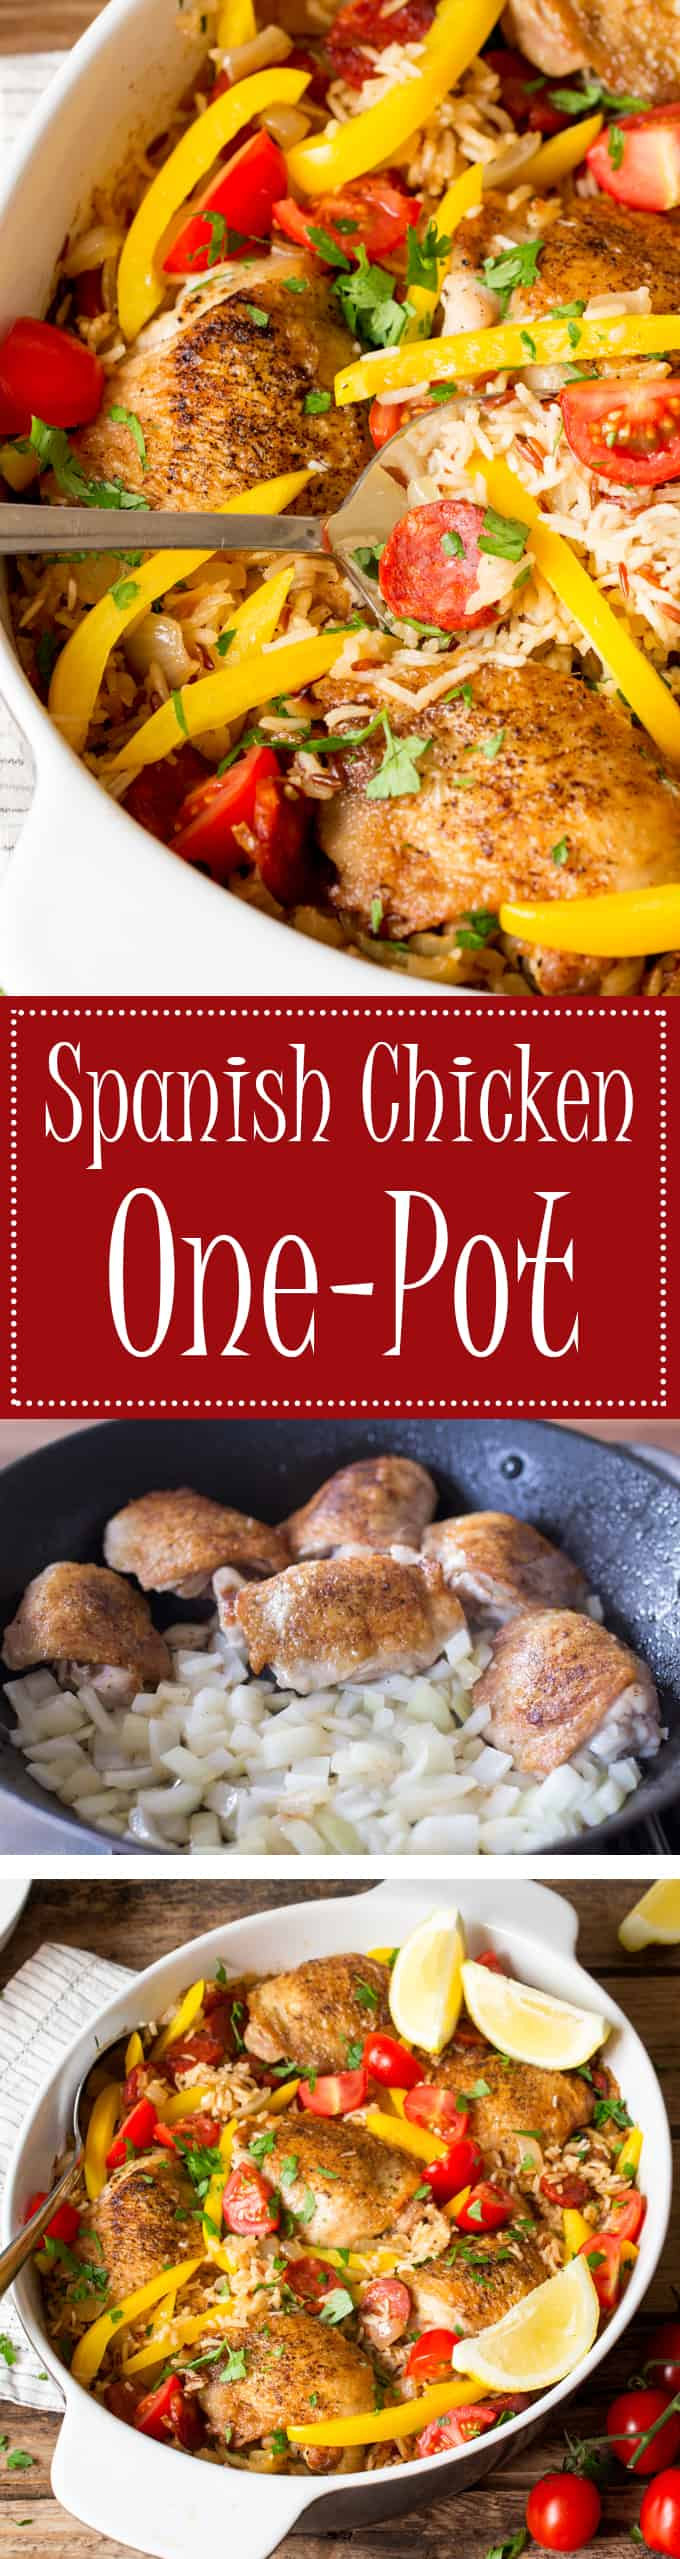 Spanish chicken one-pot with chorizo and peppers - let the oven do the hard work!